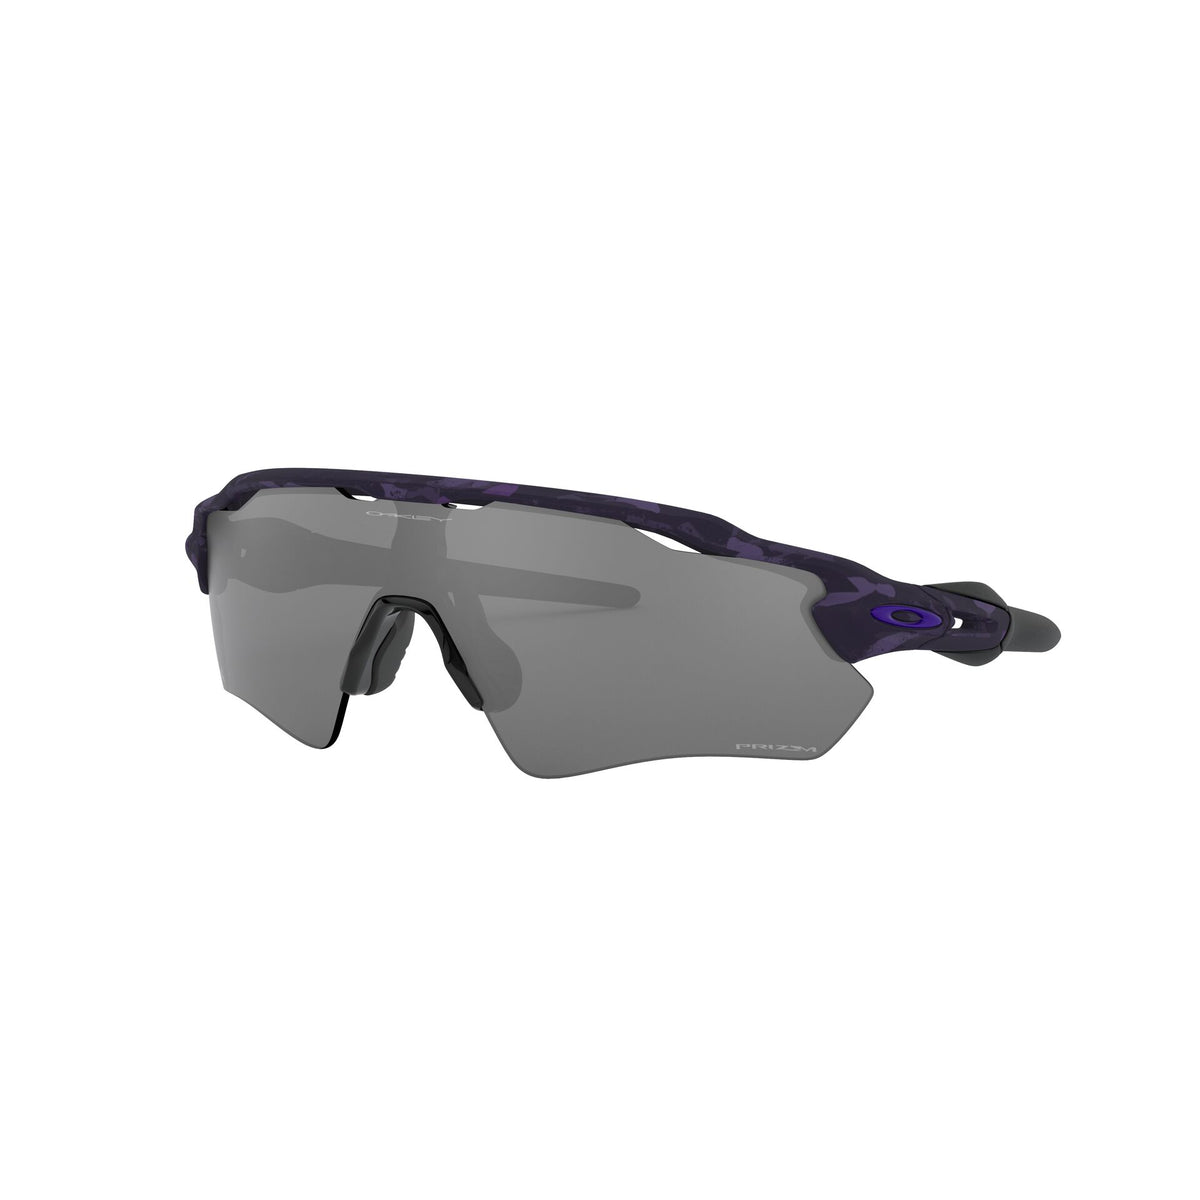 Oakley Radar EV Path Sunglasses Matte Shadow Camo Electric Purple Prizm Black Lens